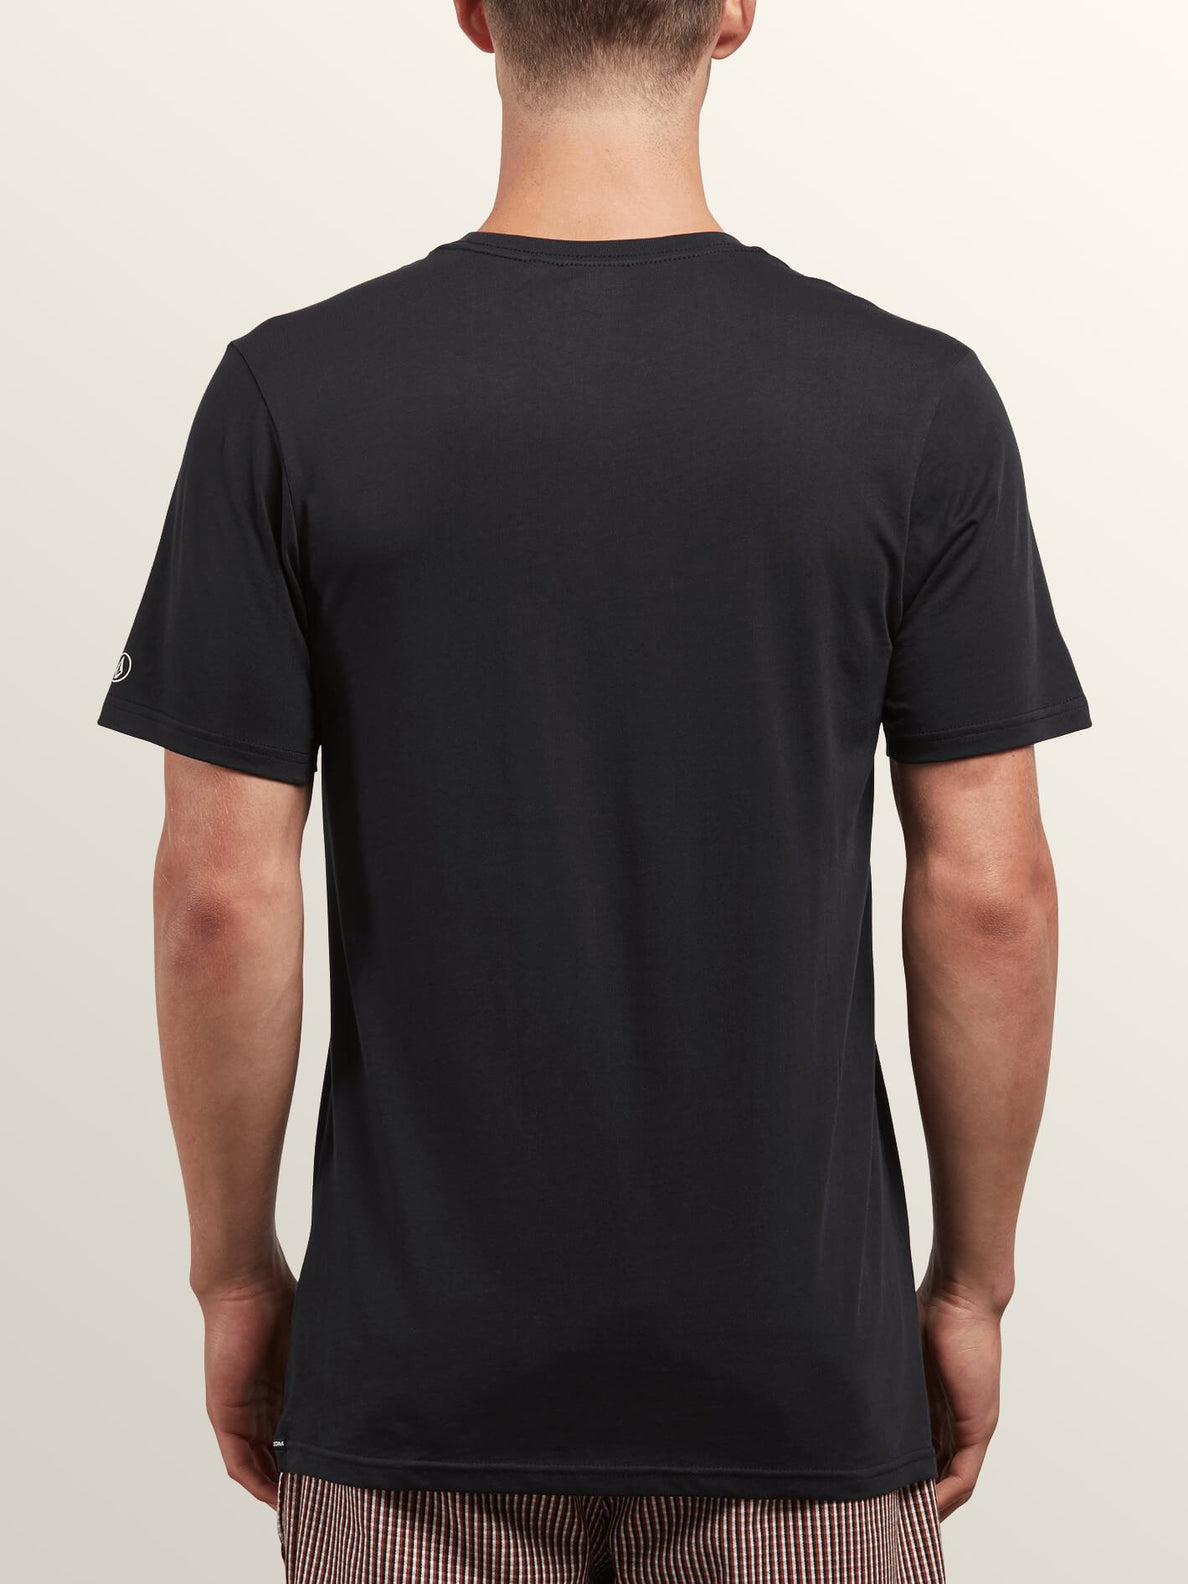 Solid Ss Tee In Black, Back View